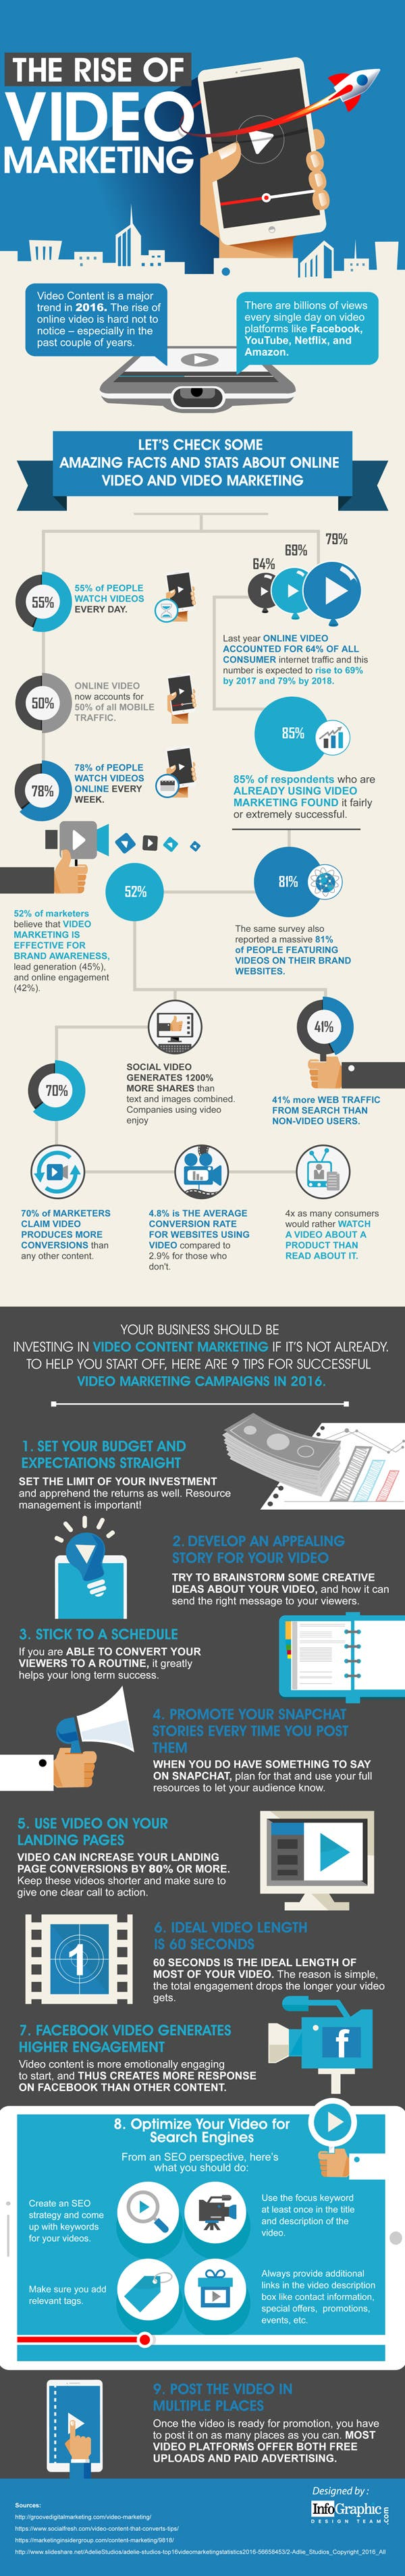 Tips in Using Video Marketing on your Business | Midtown